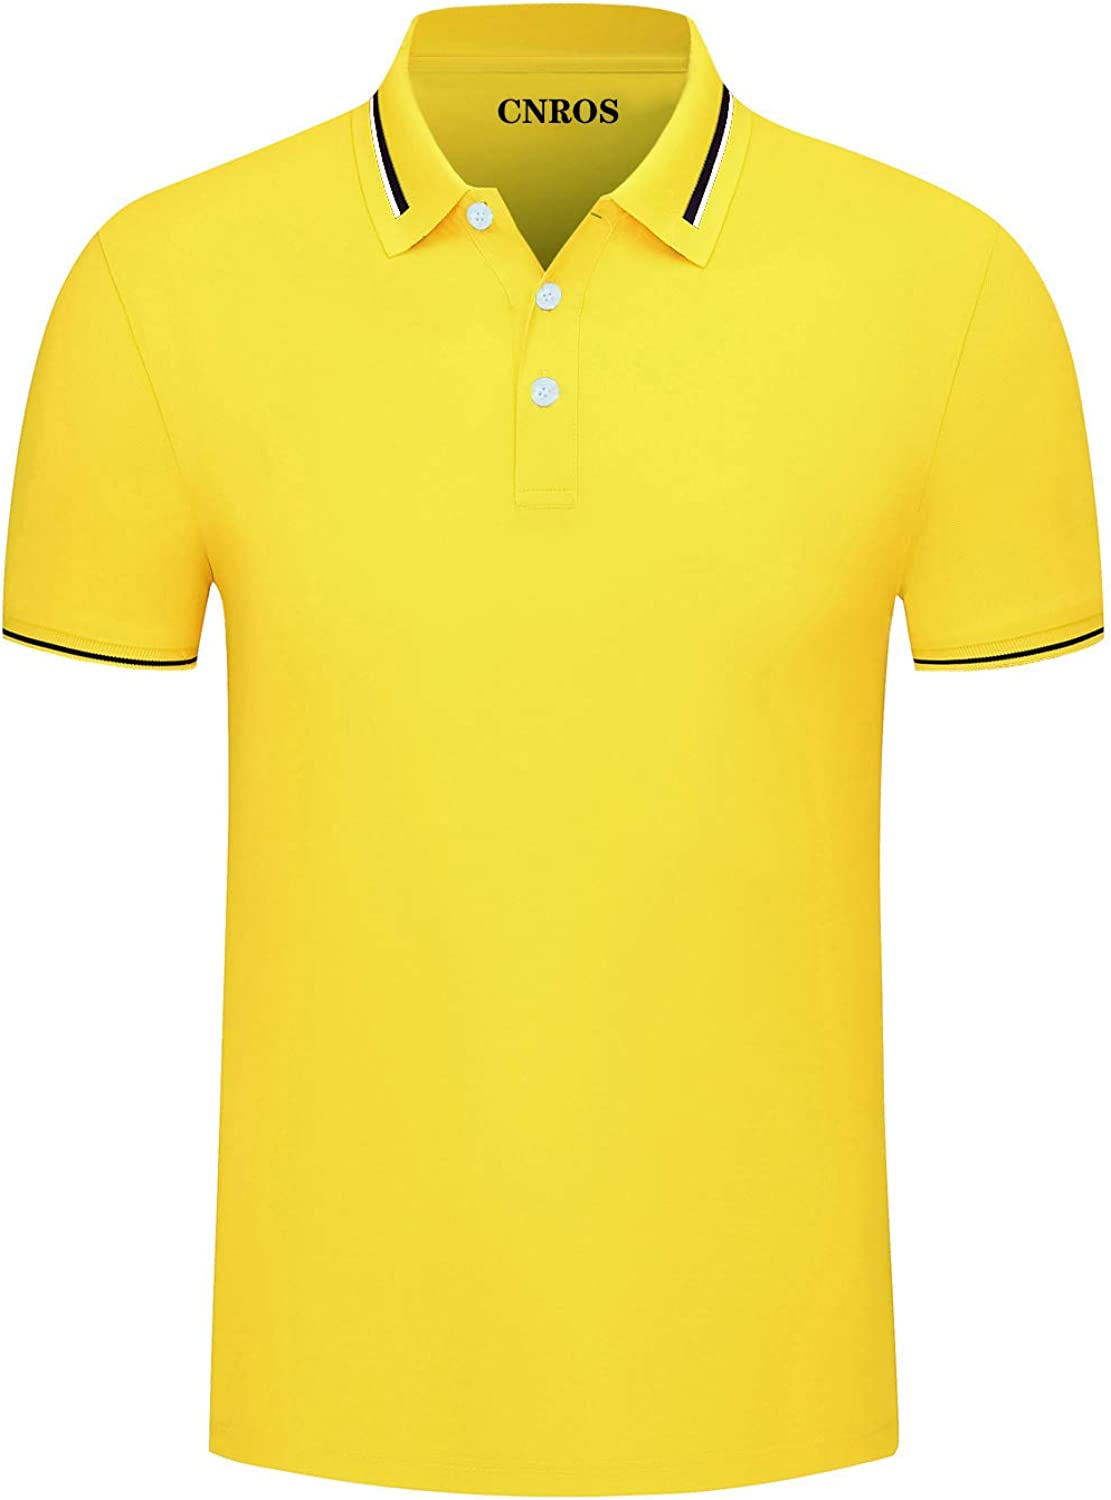 CNROS Men's Short Sleeve Solid Polo Shirt